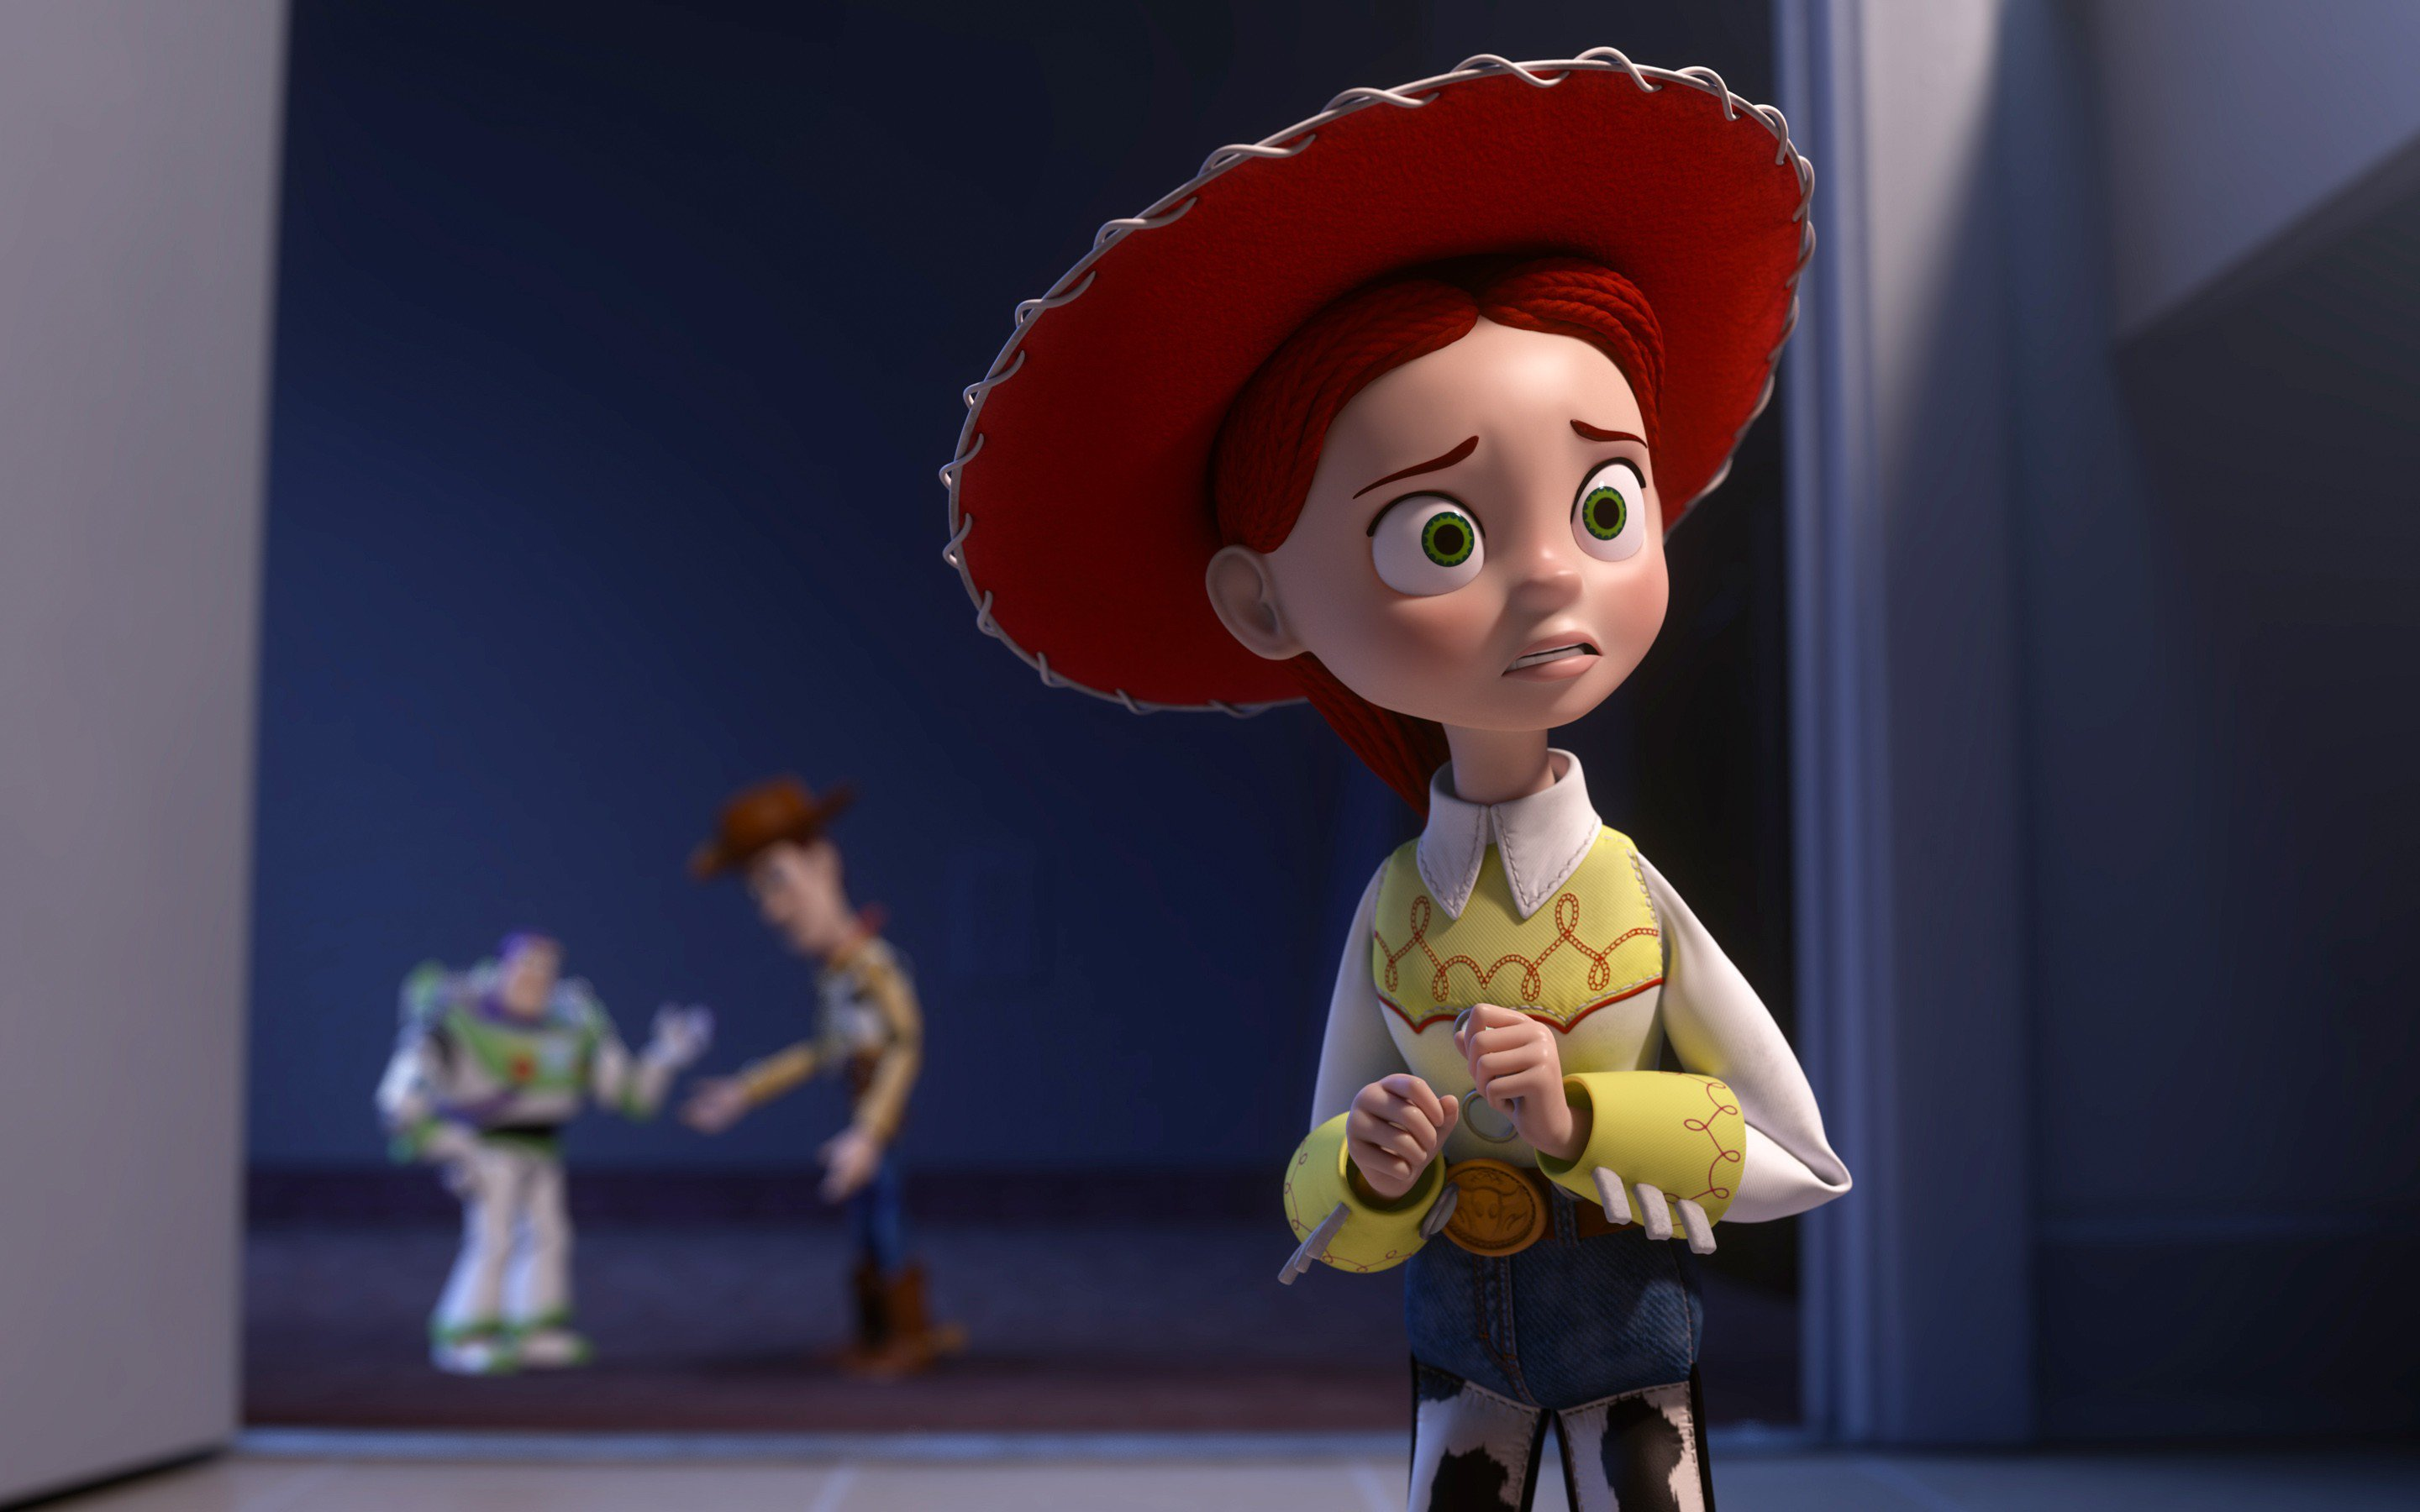 toy story wallpapers, images, backgrounds, photos and pictures